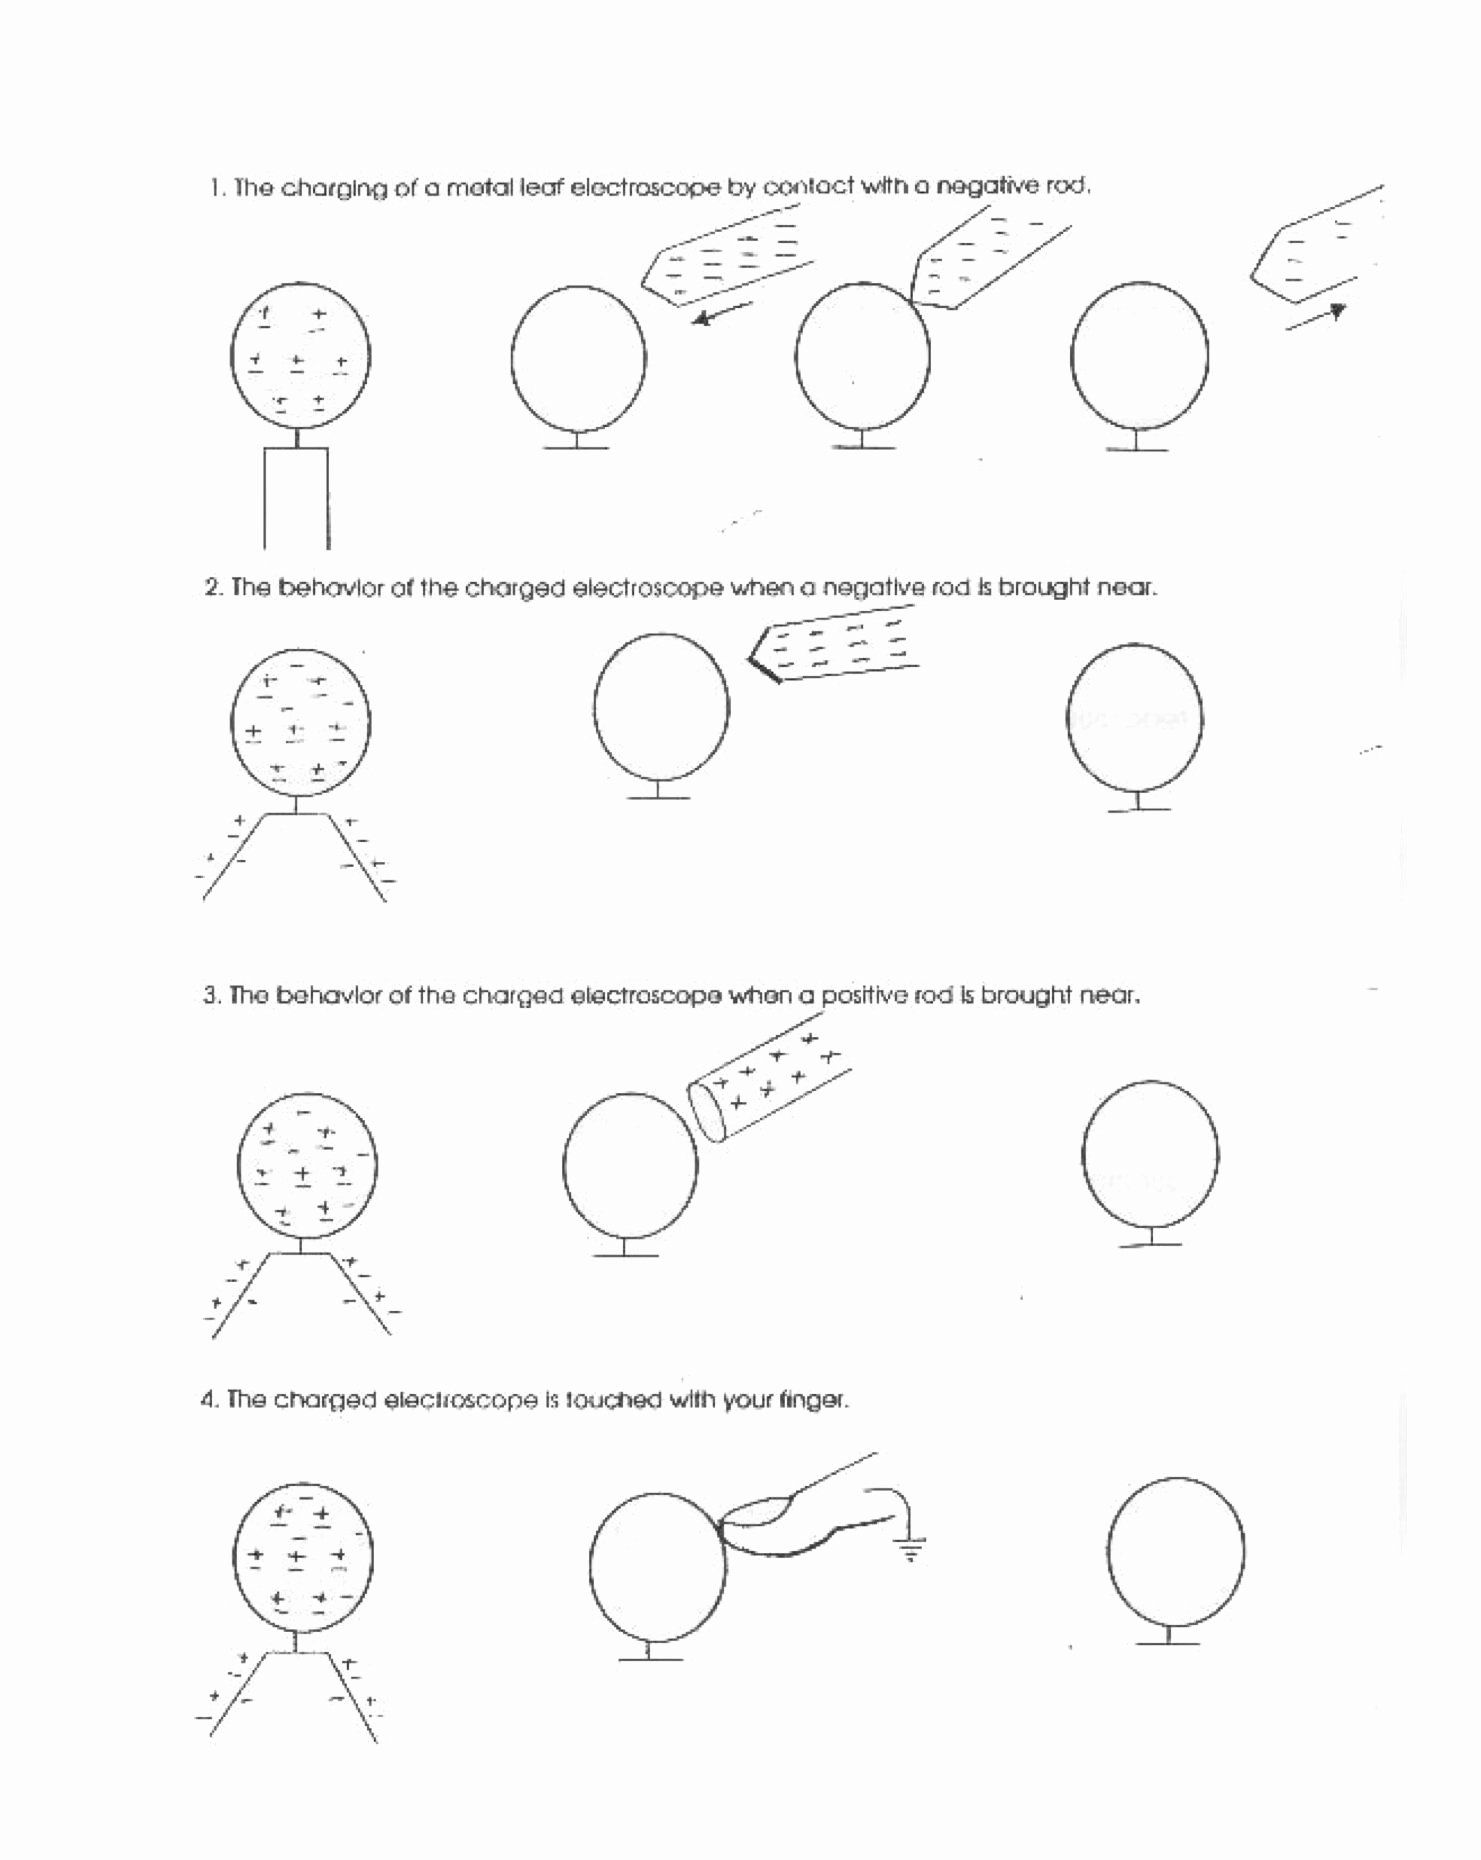 medium resolution of Static Electricity Worksheet Answers Inspirational Metal Leaf Electroscope  Contact \u0026 Induction Worksheet   Worksheets for kids